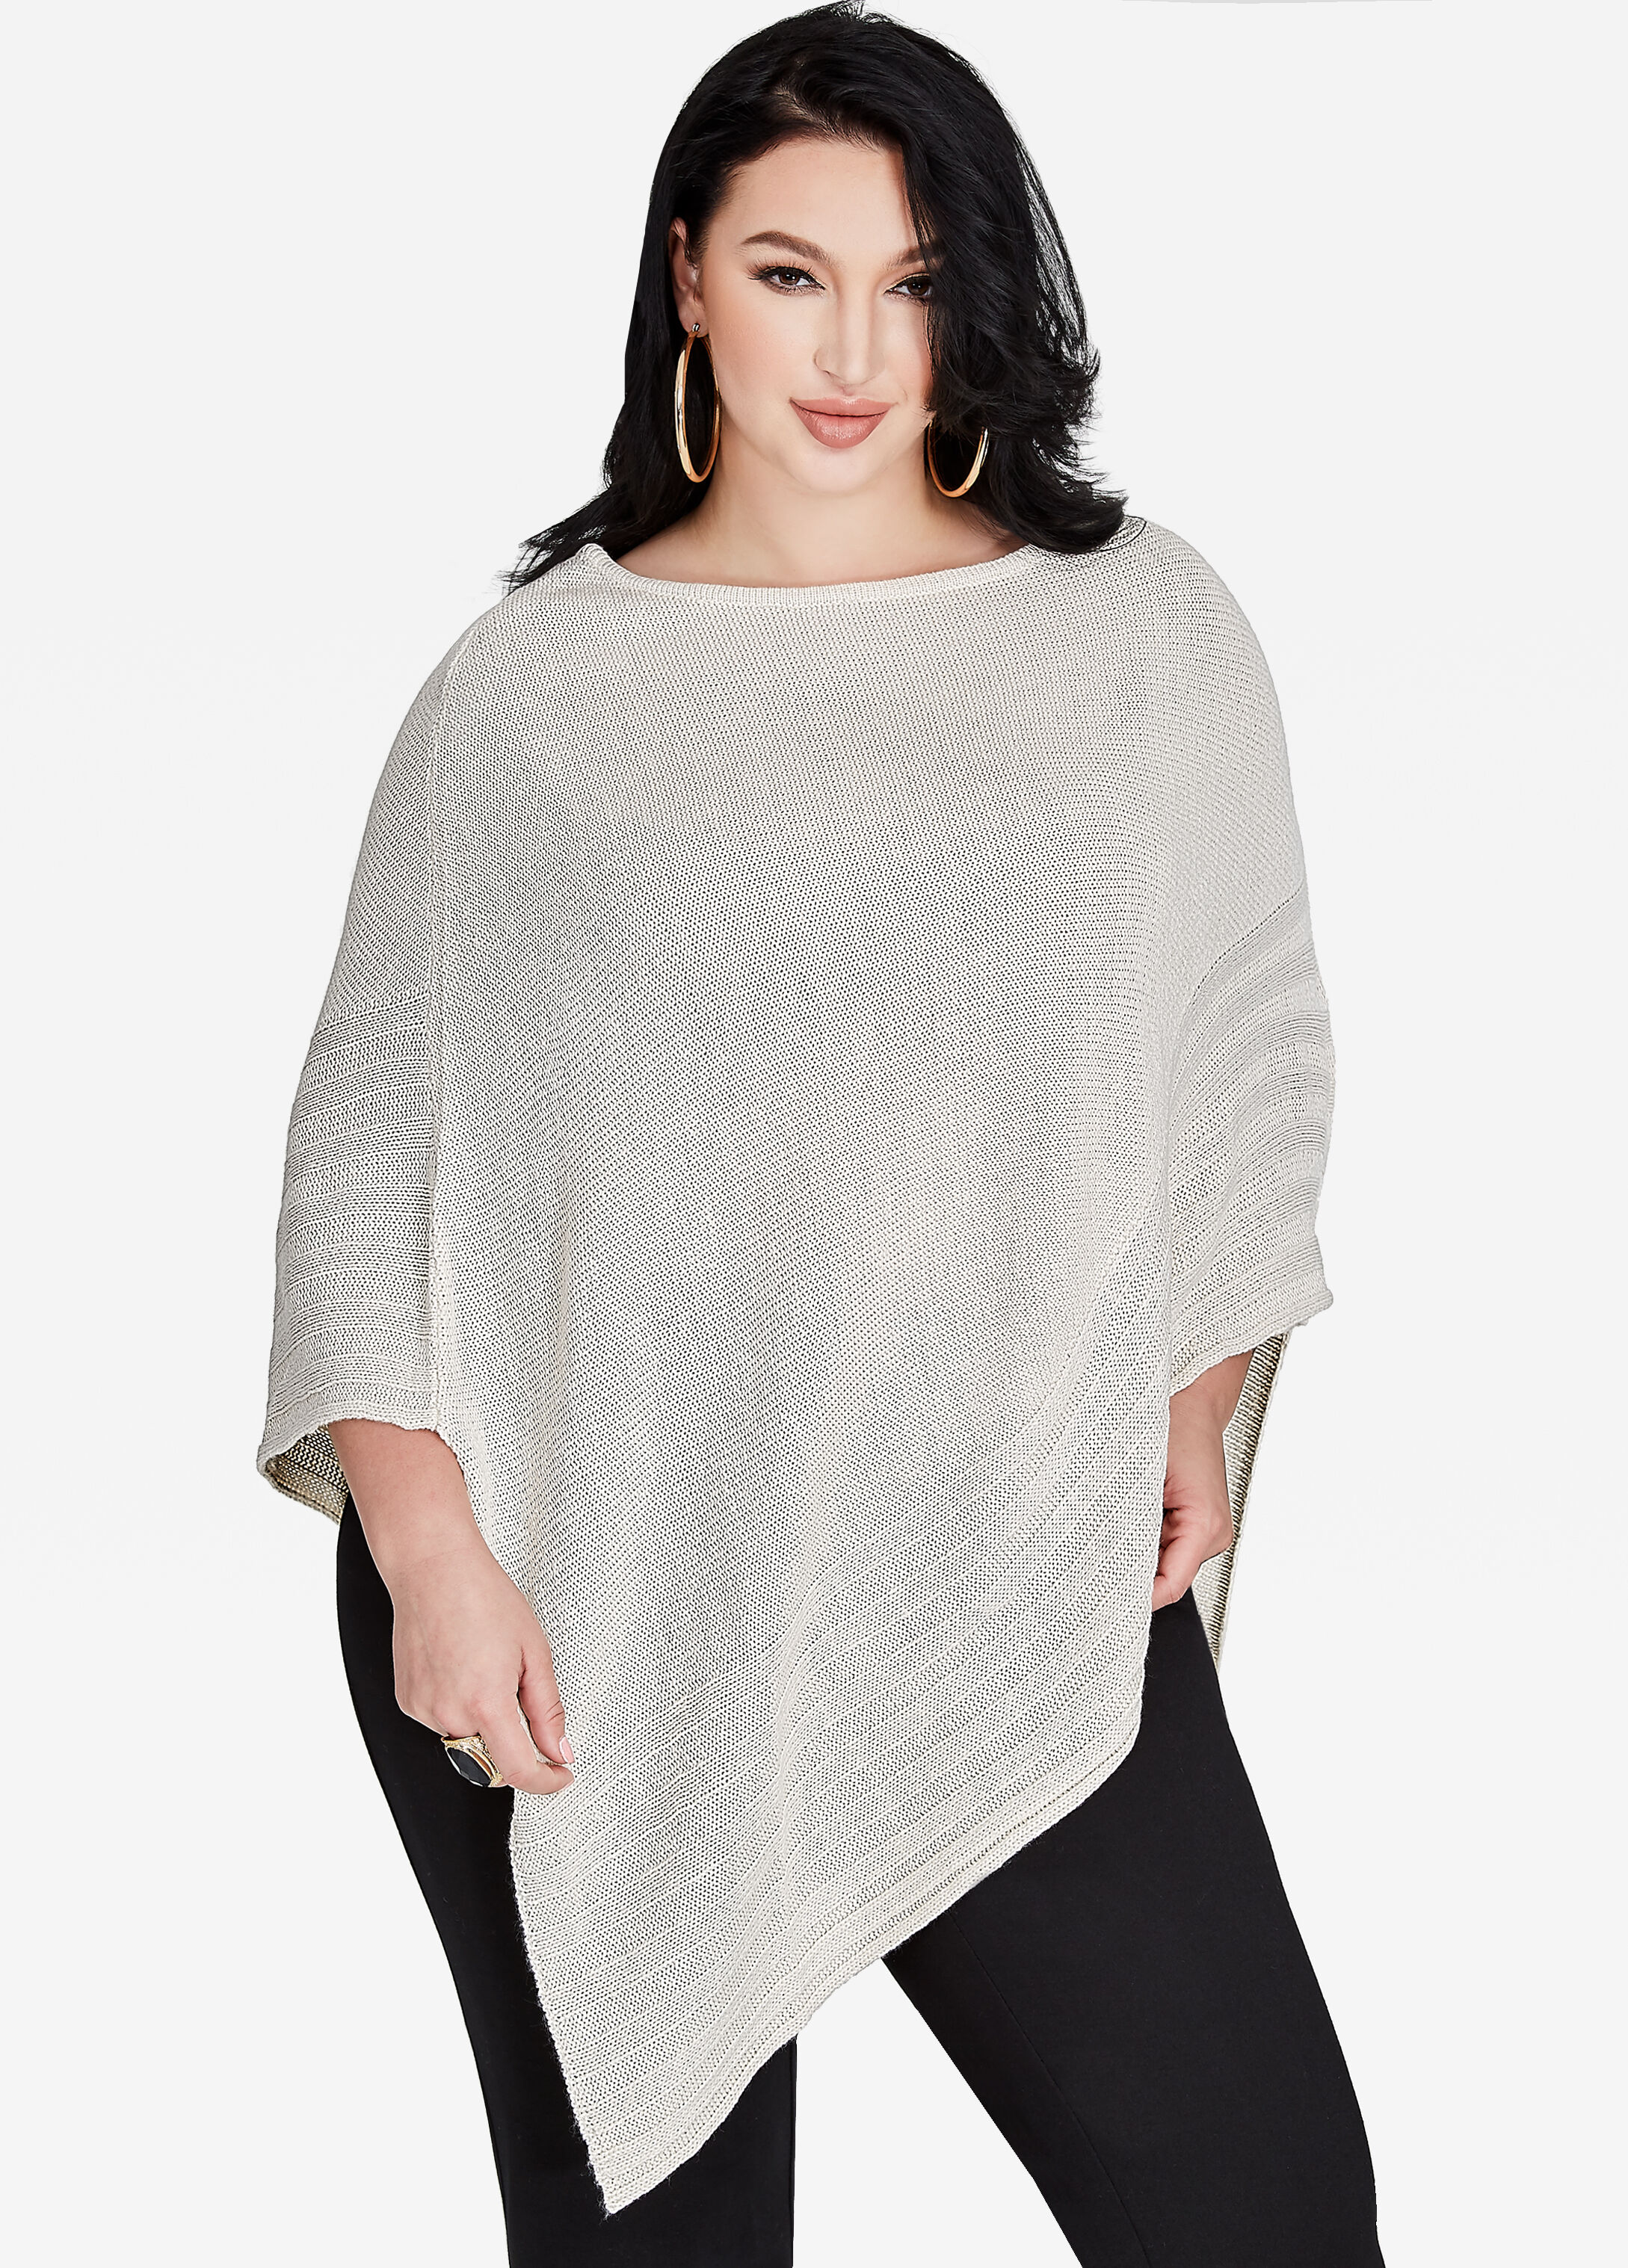 Buy Soft Knit Poncho Sweater Black - Sweaters